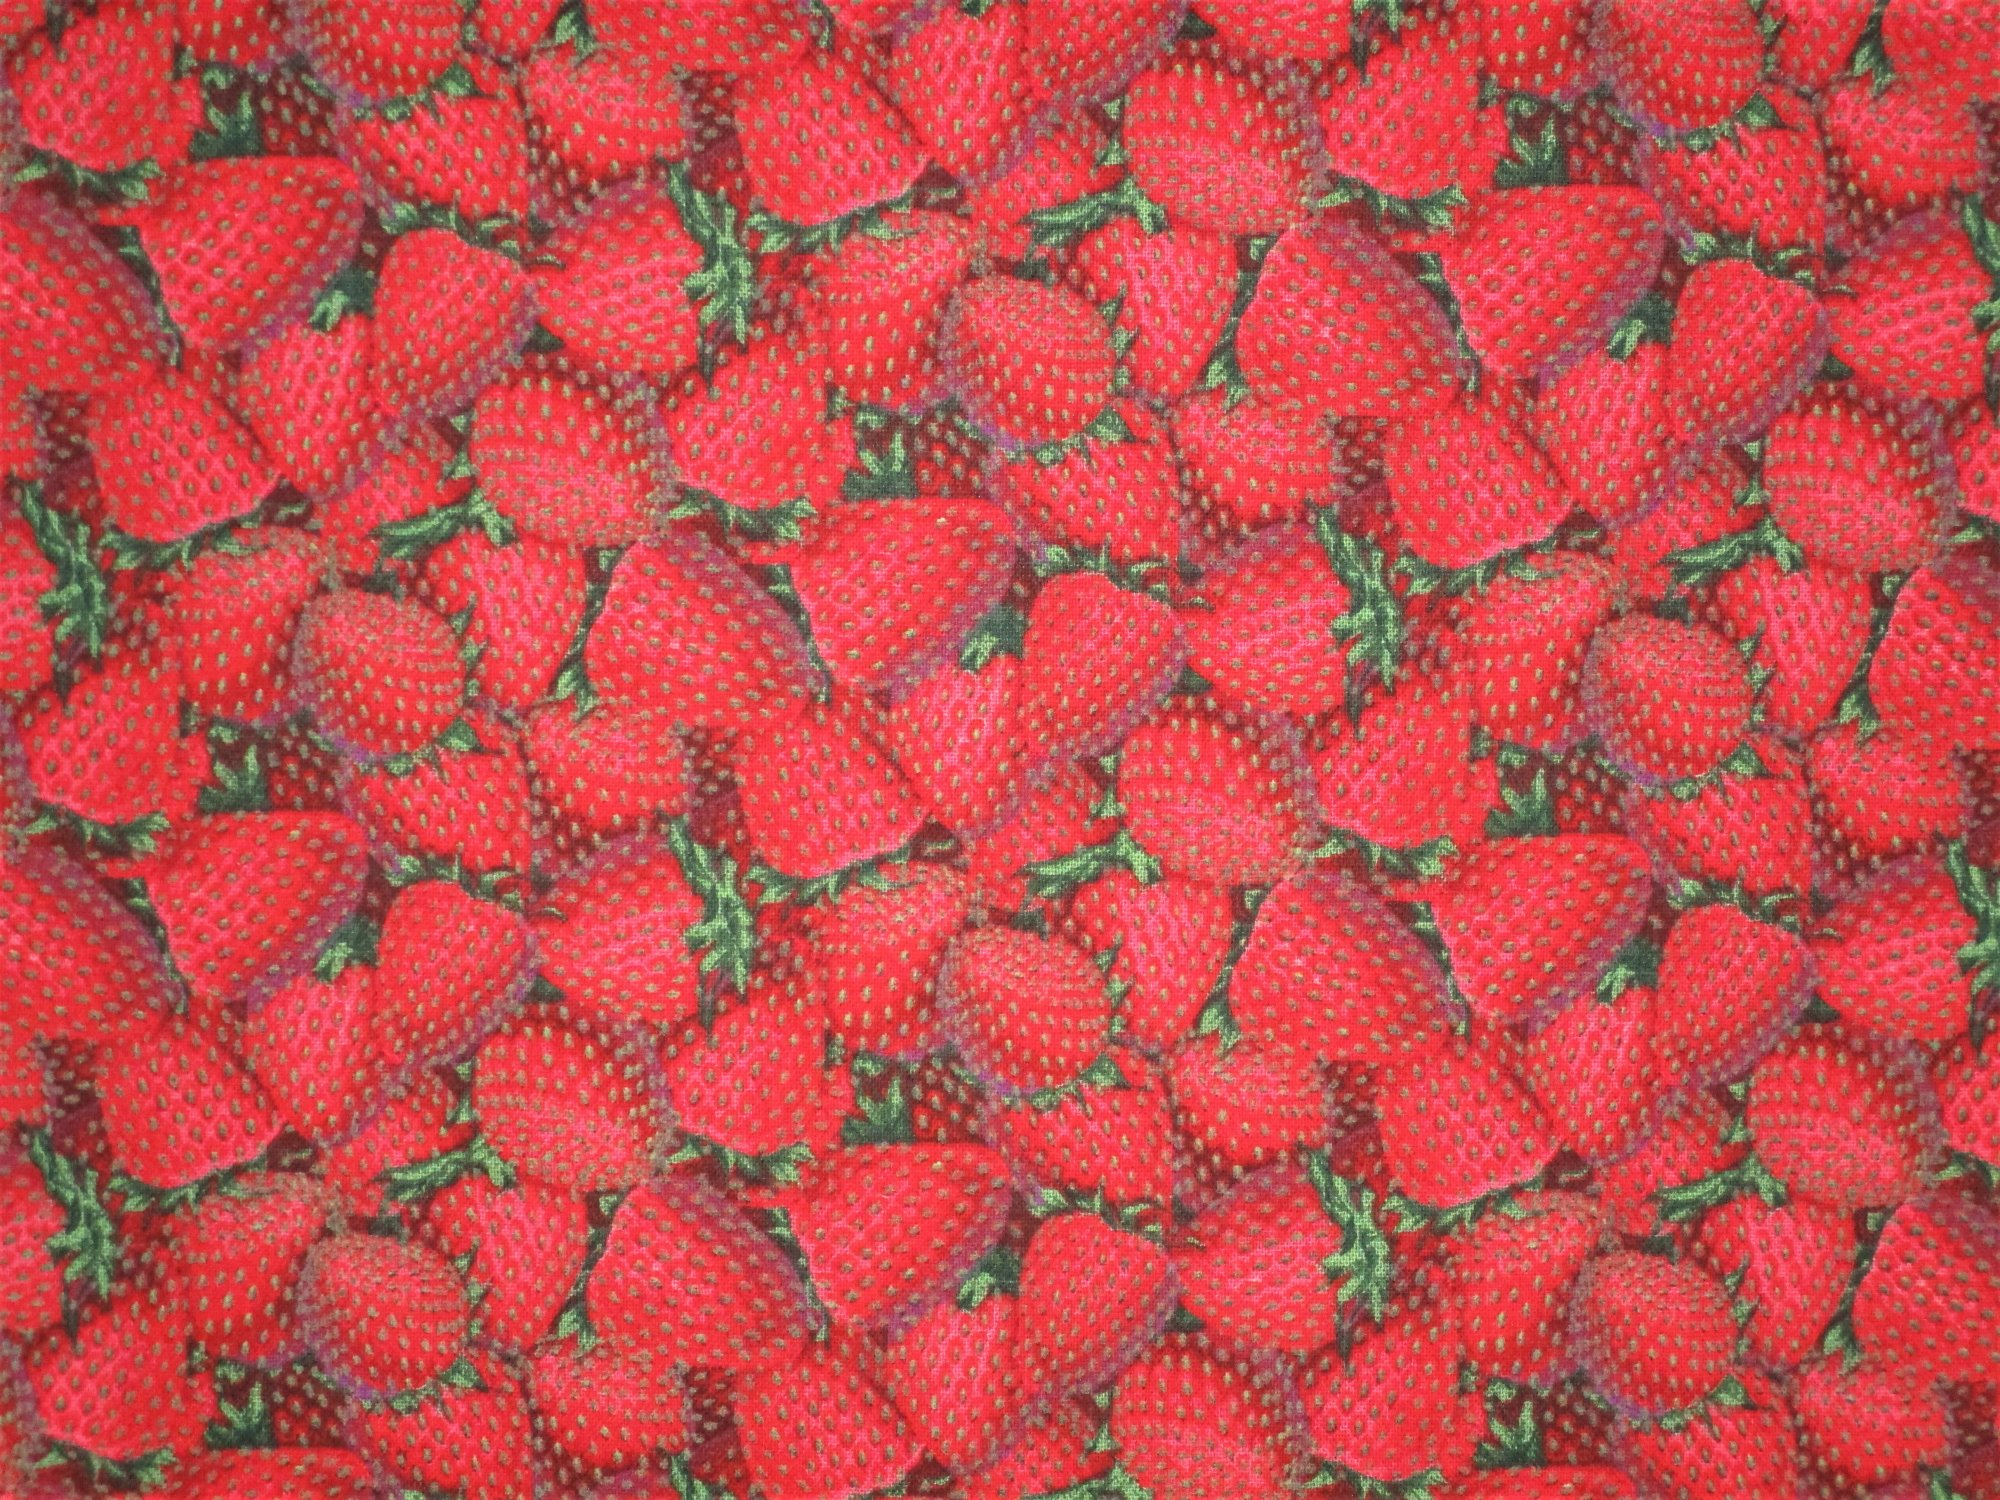 Strawberries 12757-R Strawberry.  7.99. Studio Ombre C4700 Red.  9.99. SUEDE  TEXTURE 43681-104 Red b854e6fcb